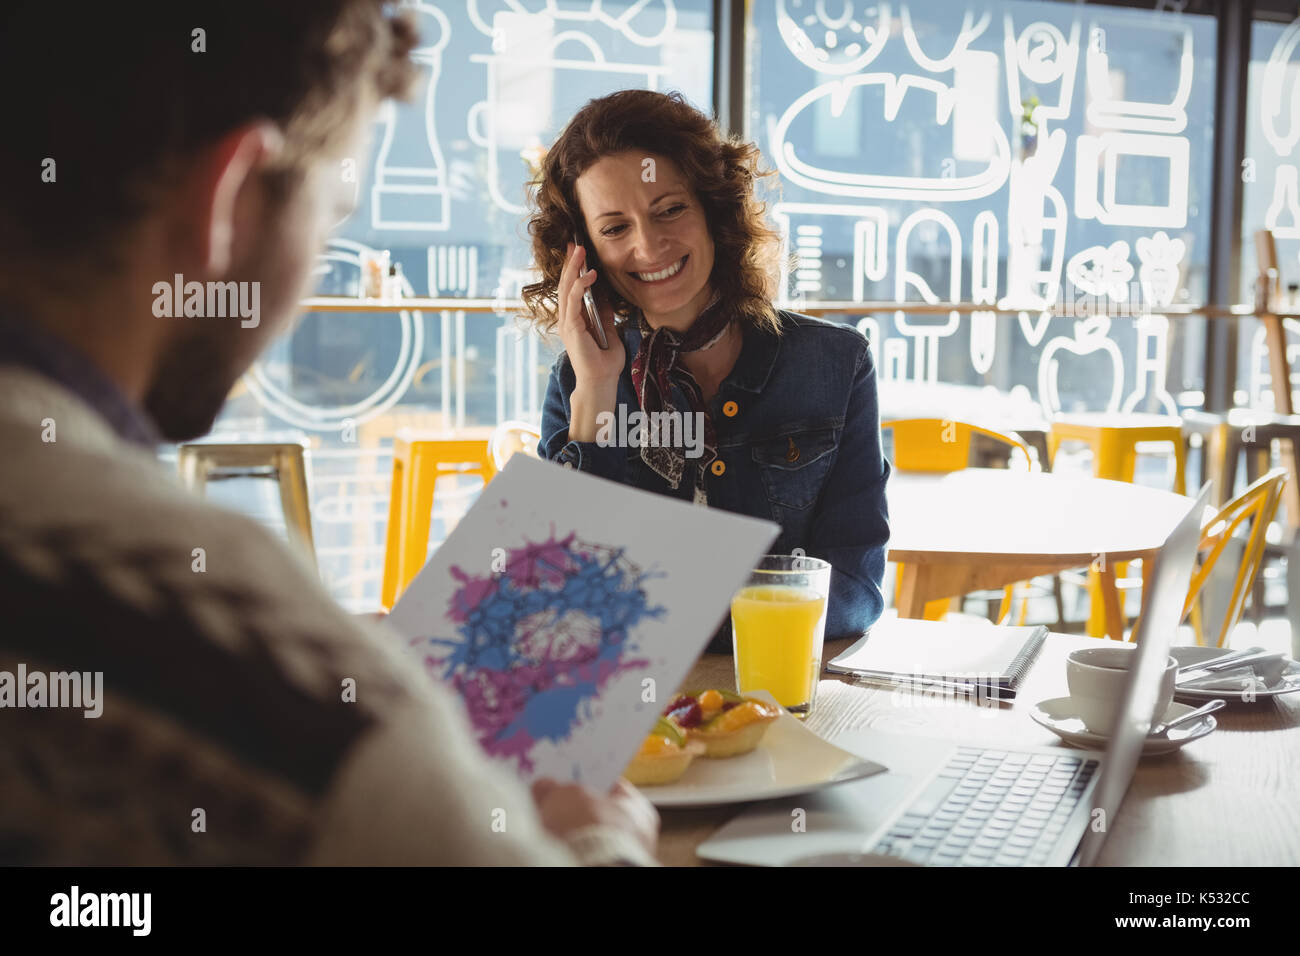 Man holding paper avec peinture de young woman talking on phone in cafe Photo Stock